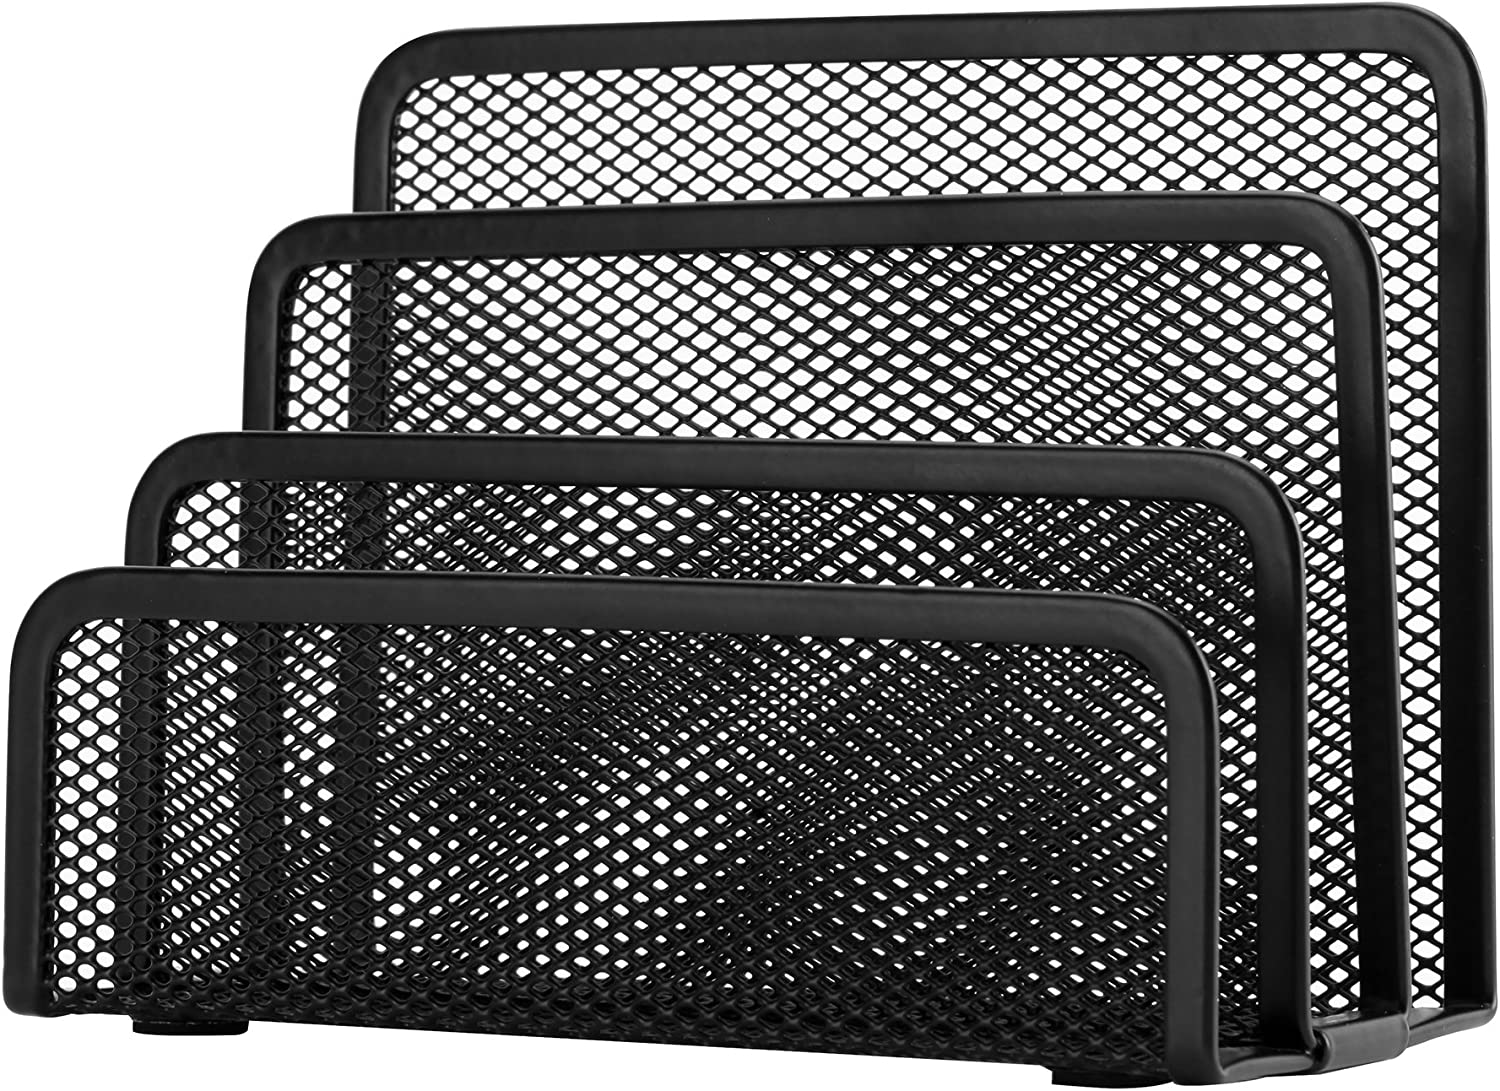 Desk Mail Organizer File Organizer and Practical Letter Sorter Strong for Any Home or Office Desktop Mail Organizer File Sorter.(6.7''3''5.2'')